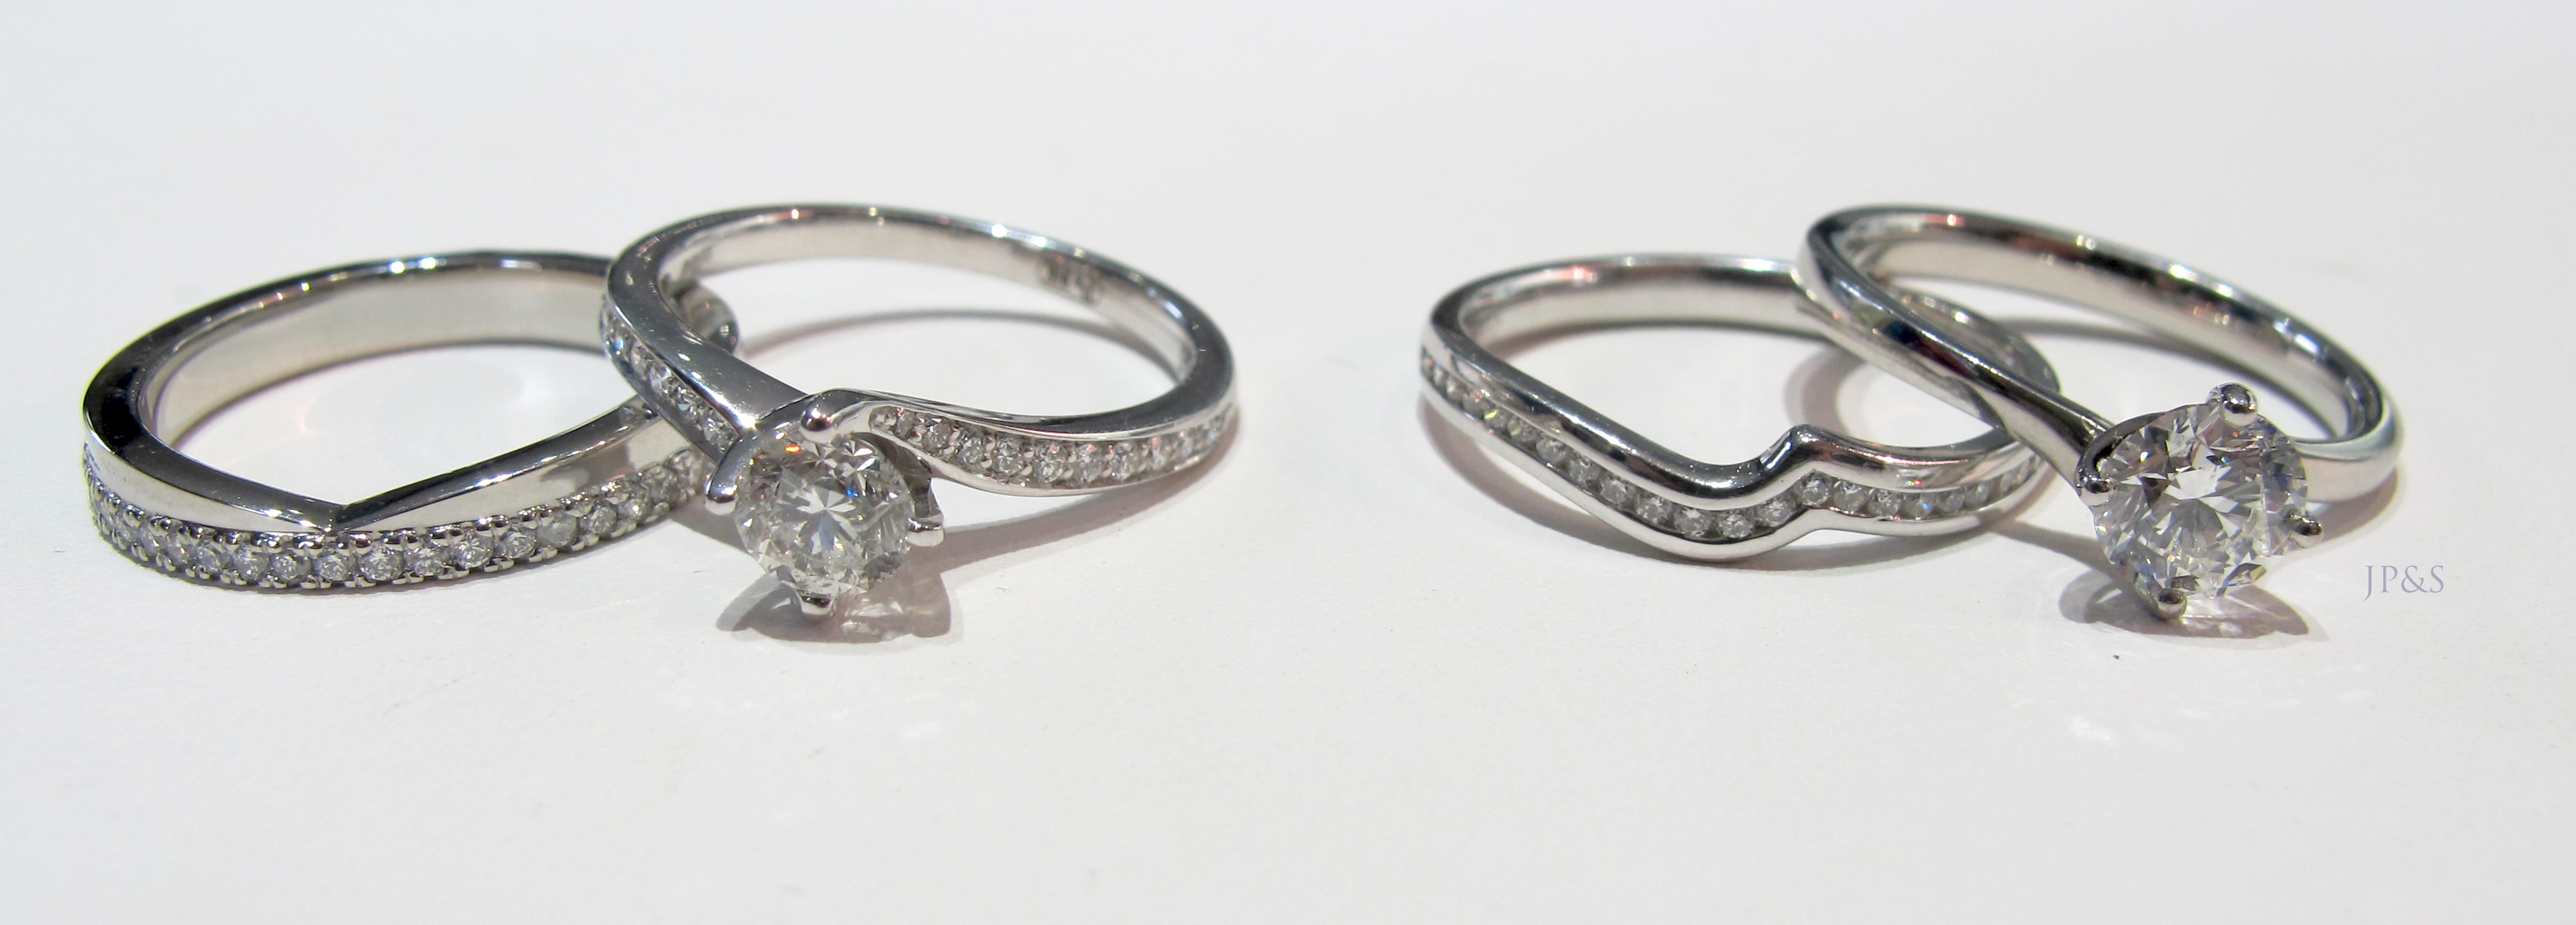 elegant but wedding rings more modern pin the a stacked double love way idea done medieval in